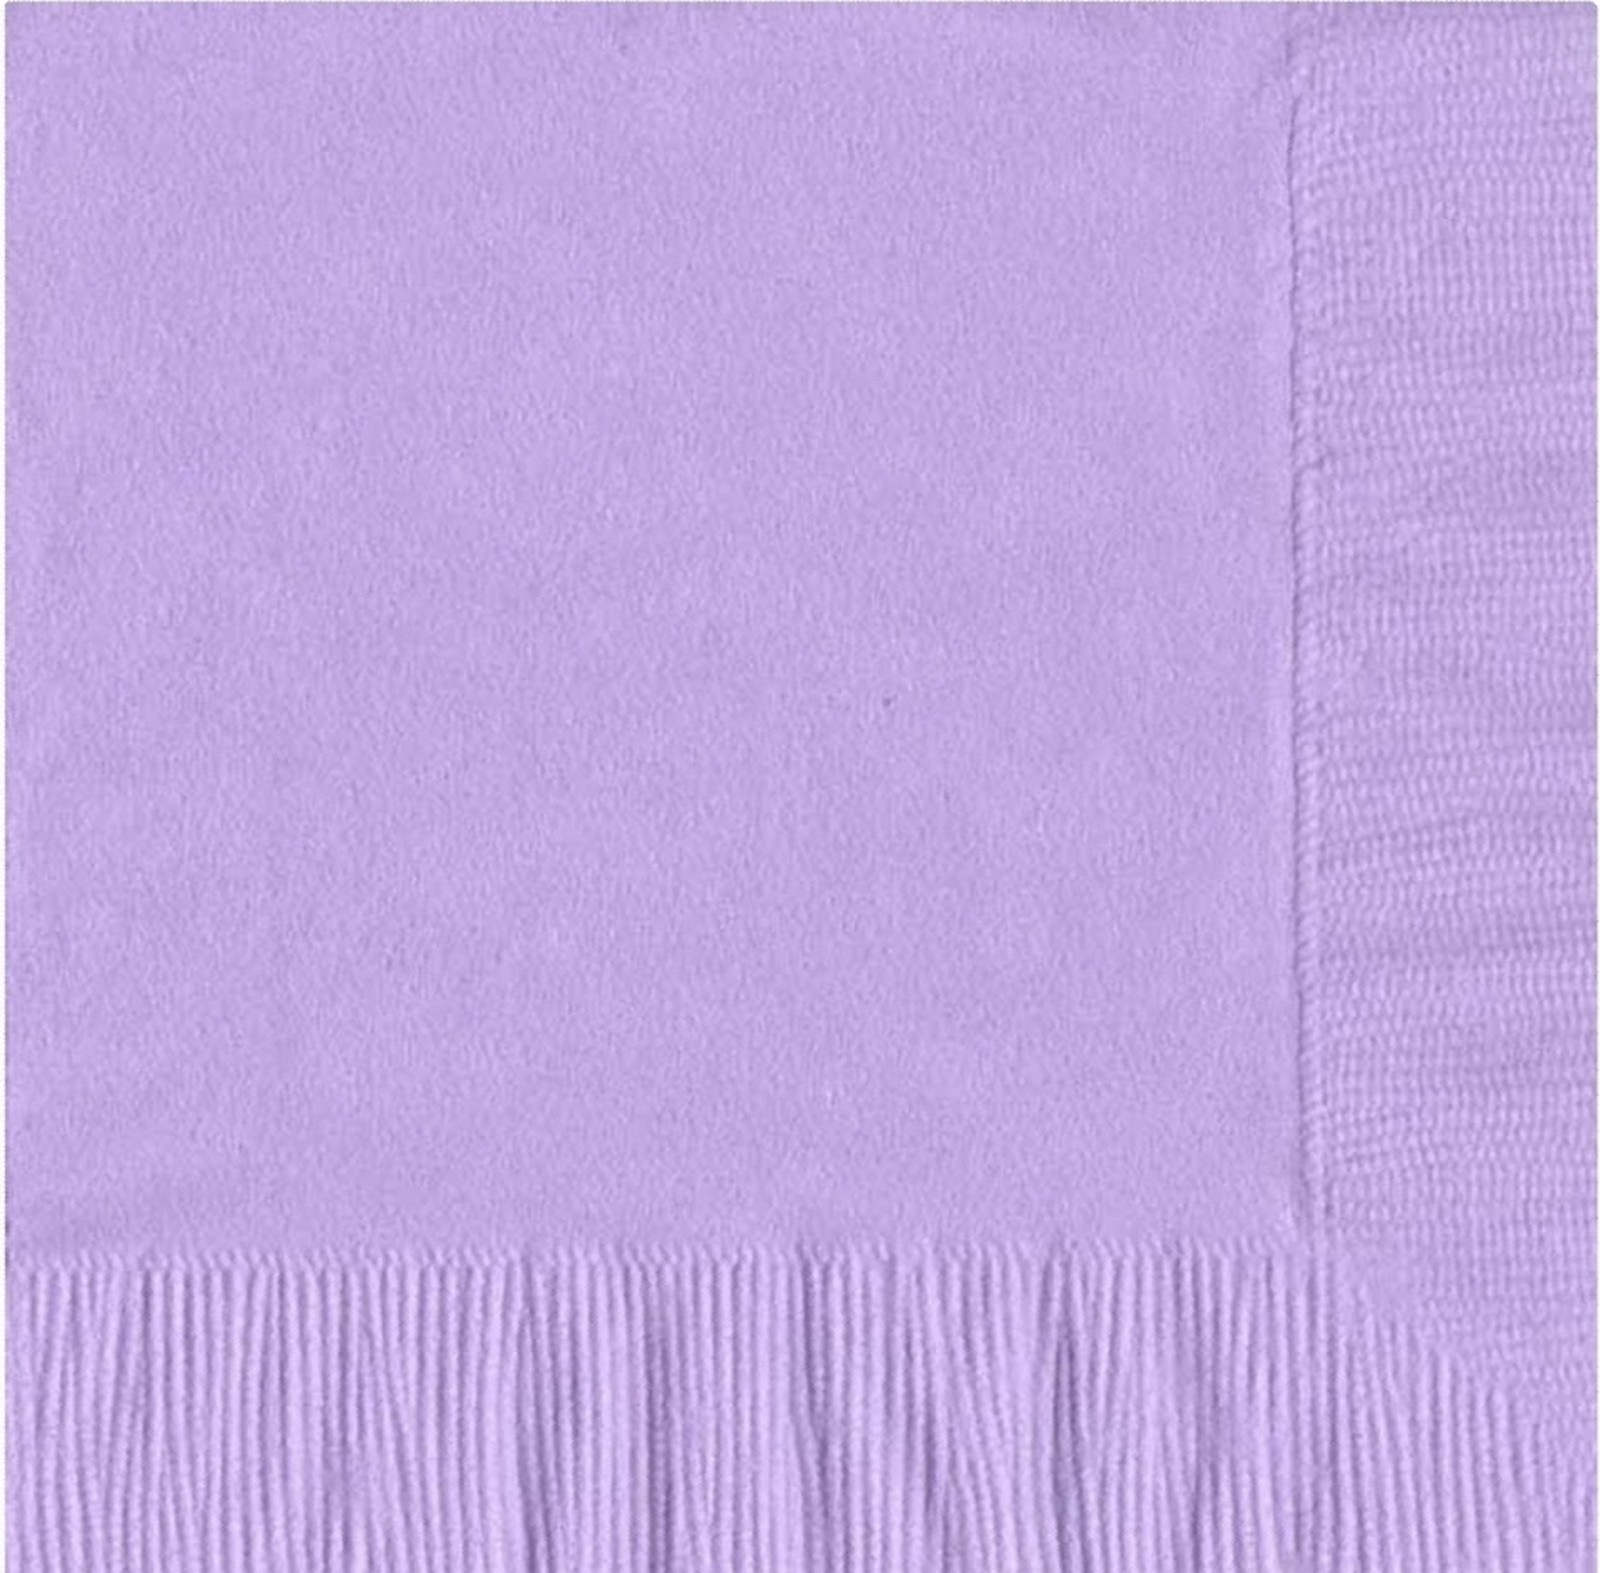 200 -  (4 Pks of 50) 2 Ply Plain Solid Colors Luncheon Dinner Napkins Paper - Lavender